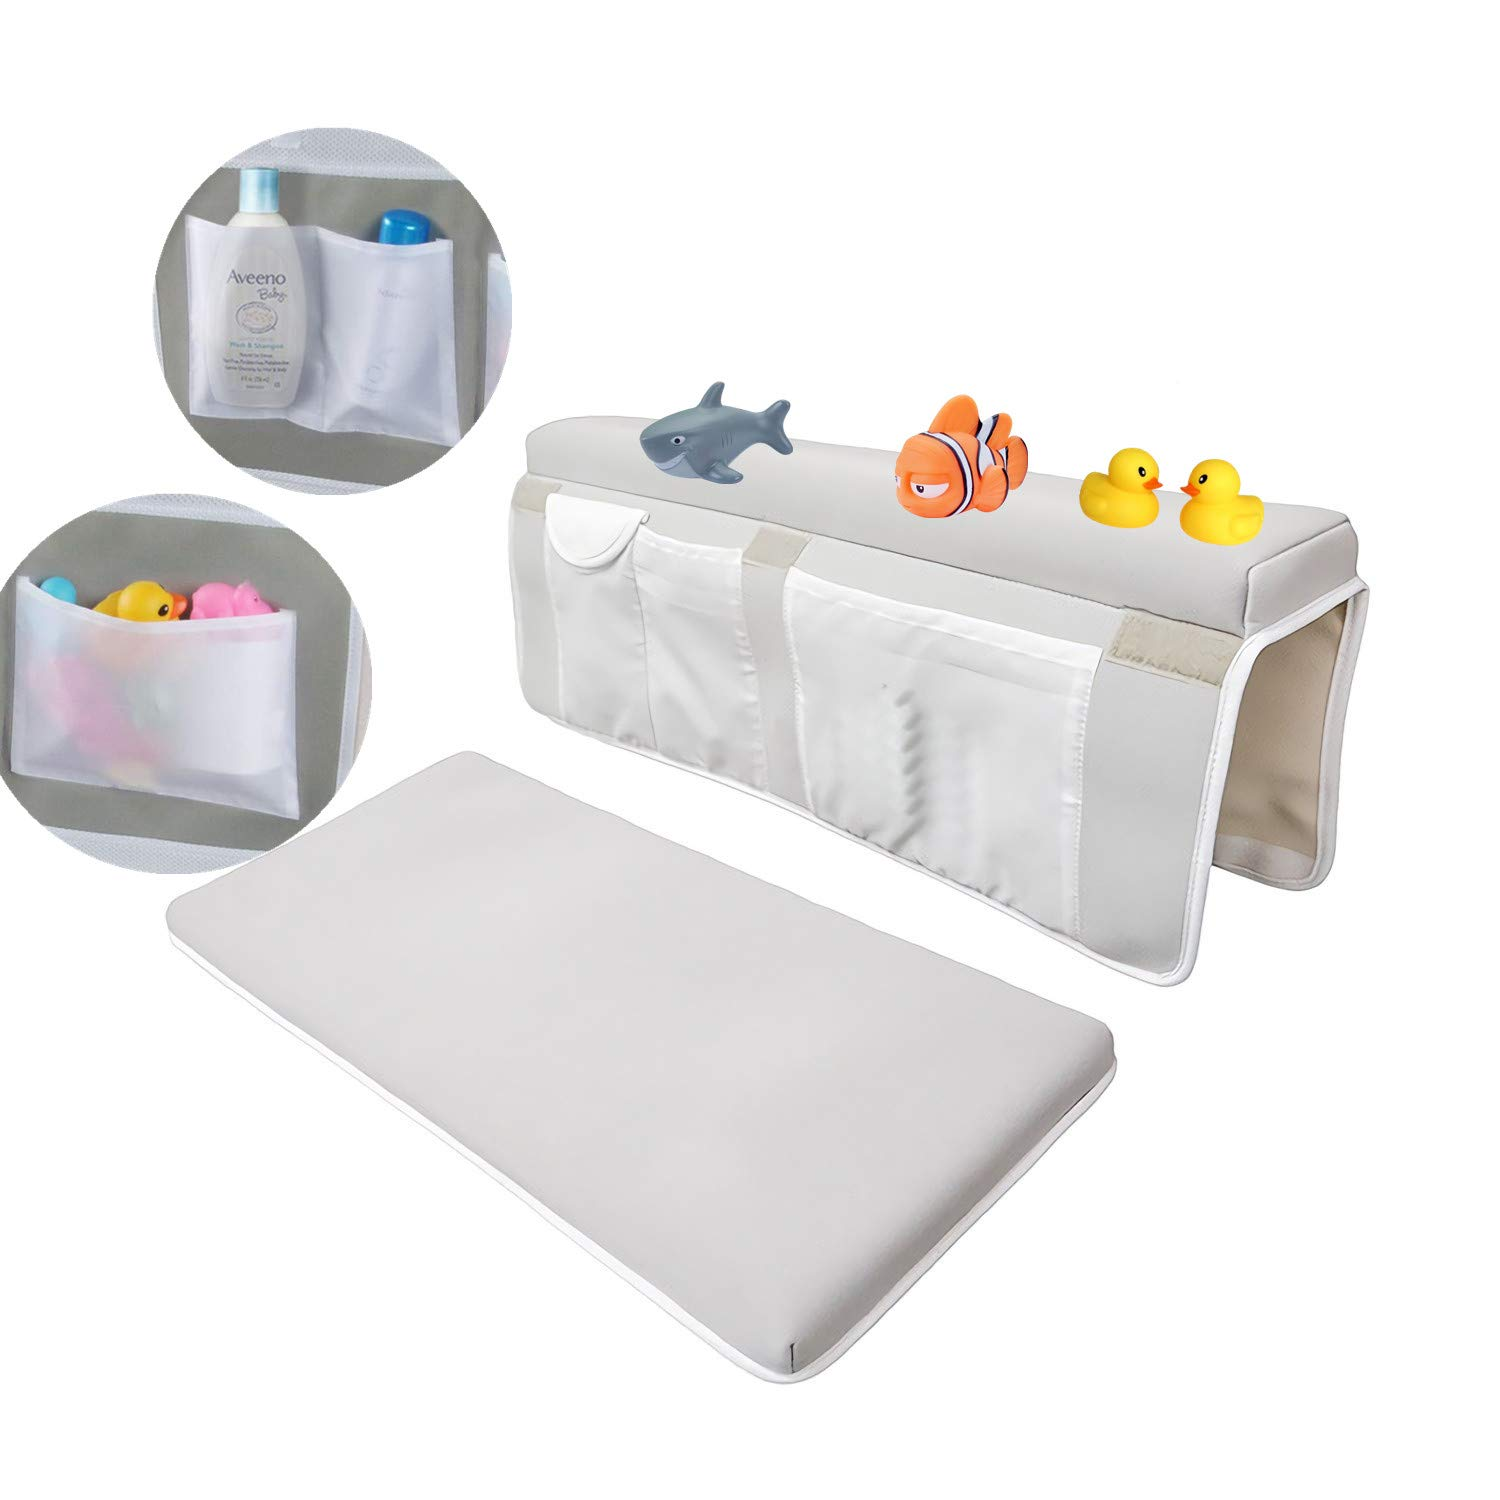 Bath Kneeler & Elbow Rest Kneeling Pads for Bathing Baby Bathtub Non-Slip Material Kneeling Pad Waterproof PAD Cushion Mats for Baby Toy Accessories Easy to Clean by NXqilixiang